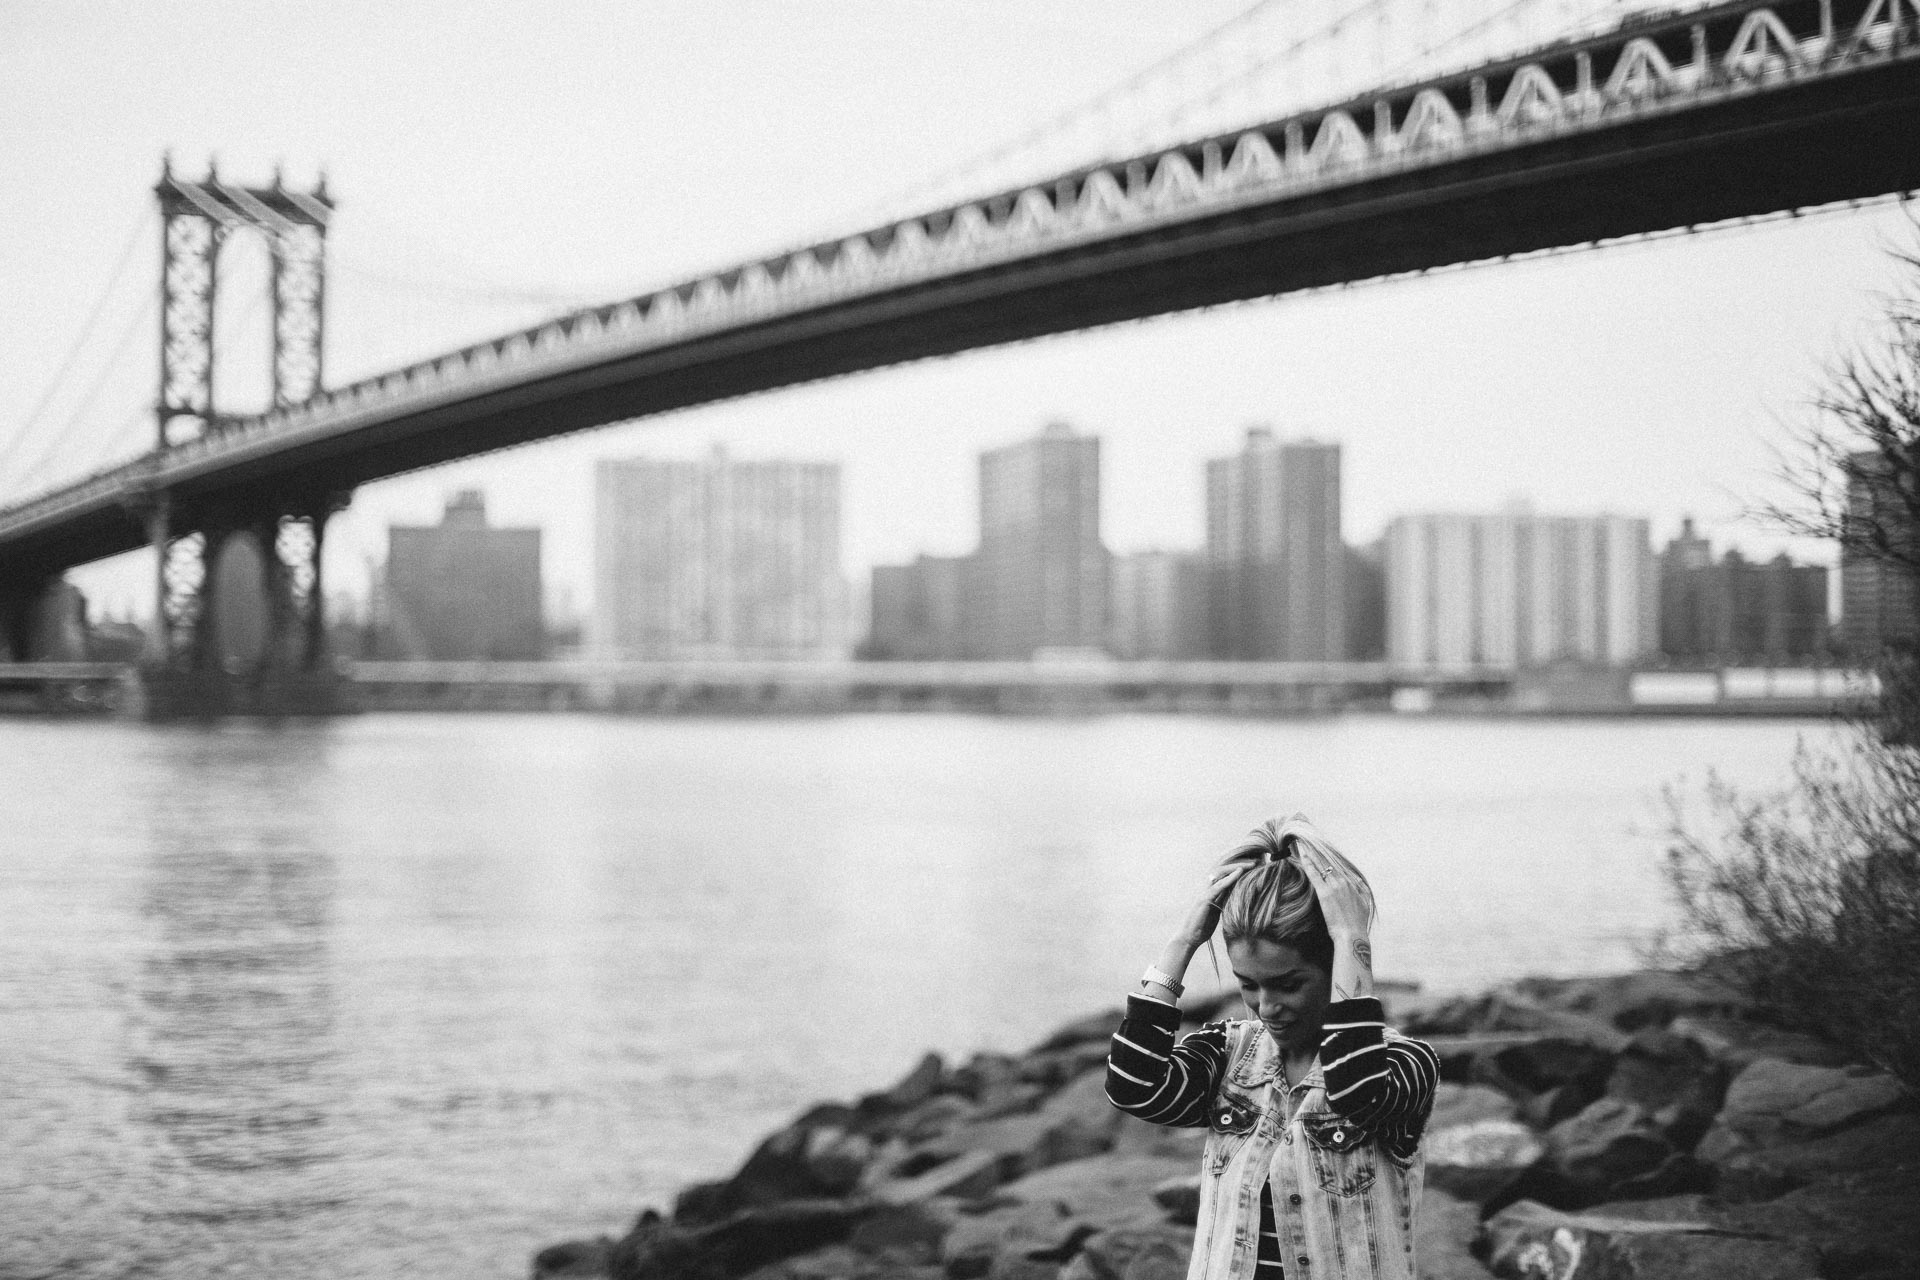 Kiko & Fefe Engagement Session in Dumbo, Brooklyn . New York - Jean-Laurent Gaudy